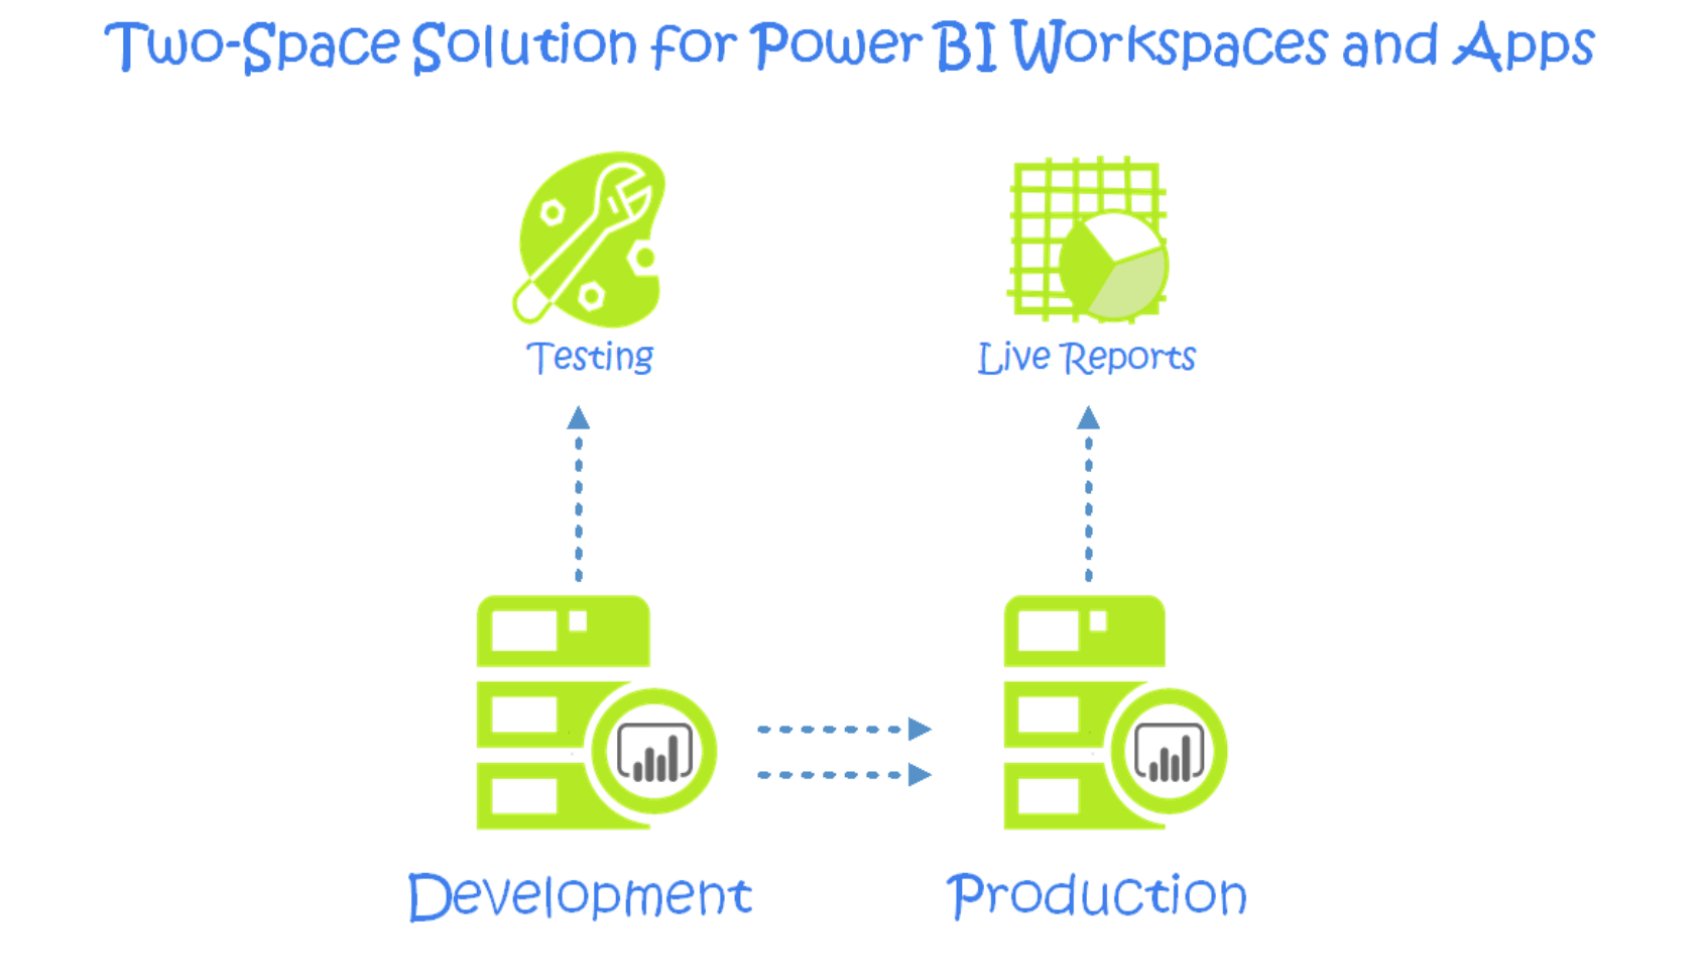 Power BI Workspaces, Apps & Keeping changes from disrupting